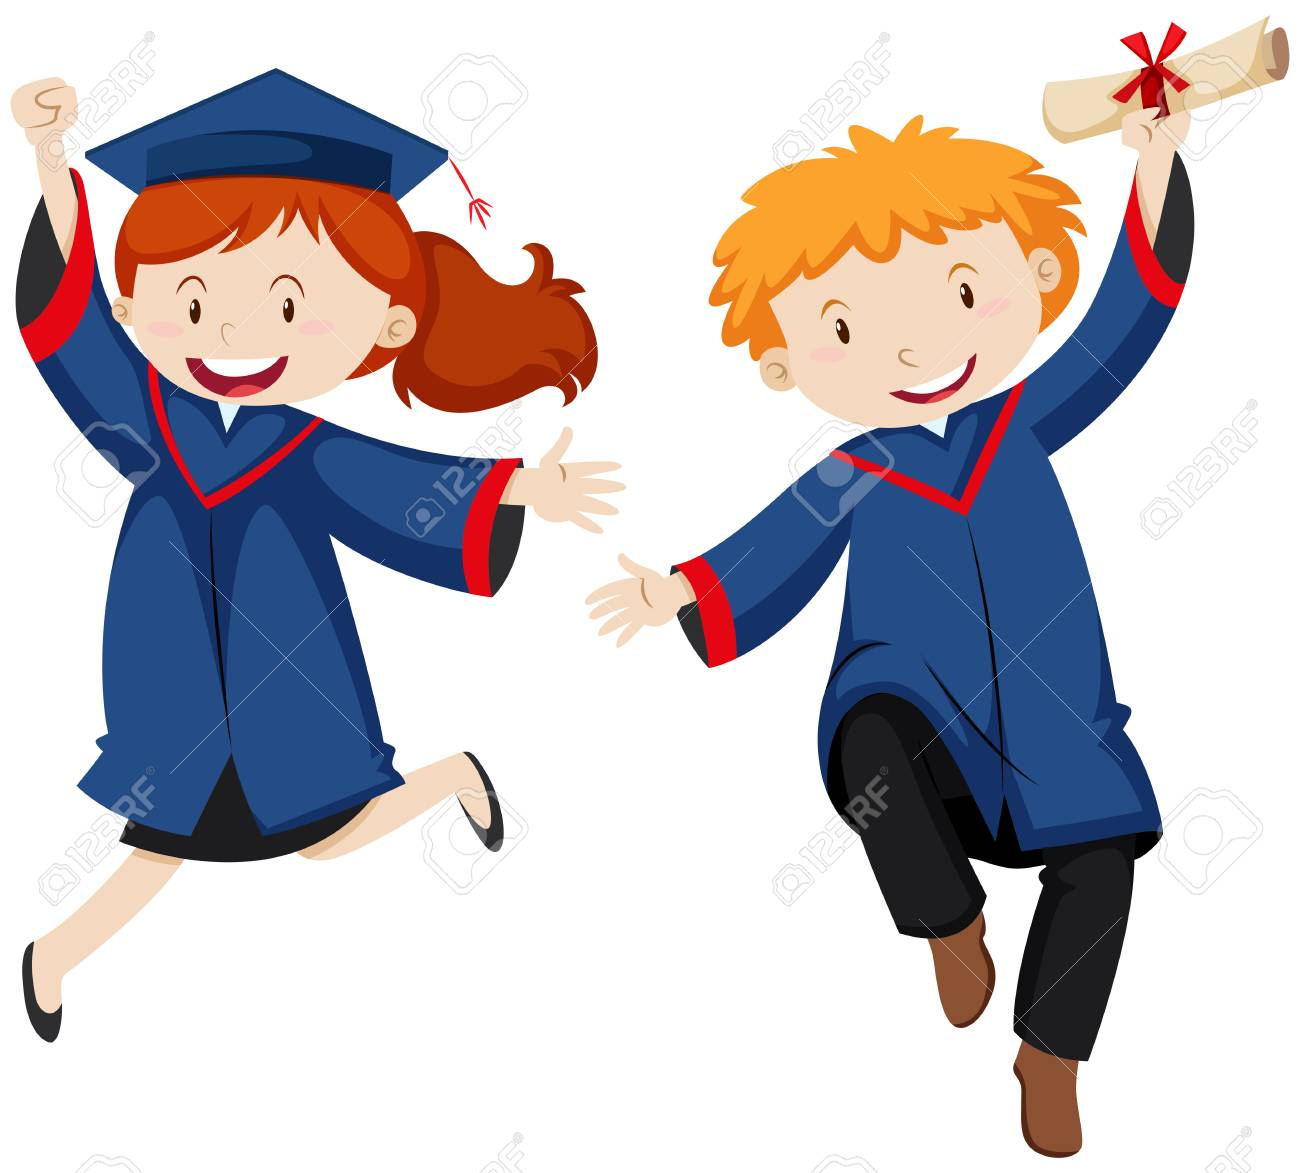 Boy and girl in graduation gown illustration.